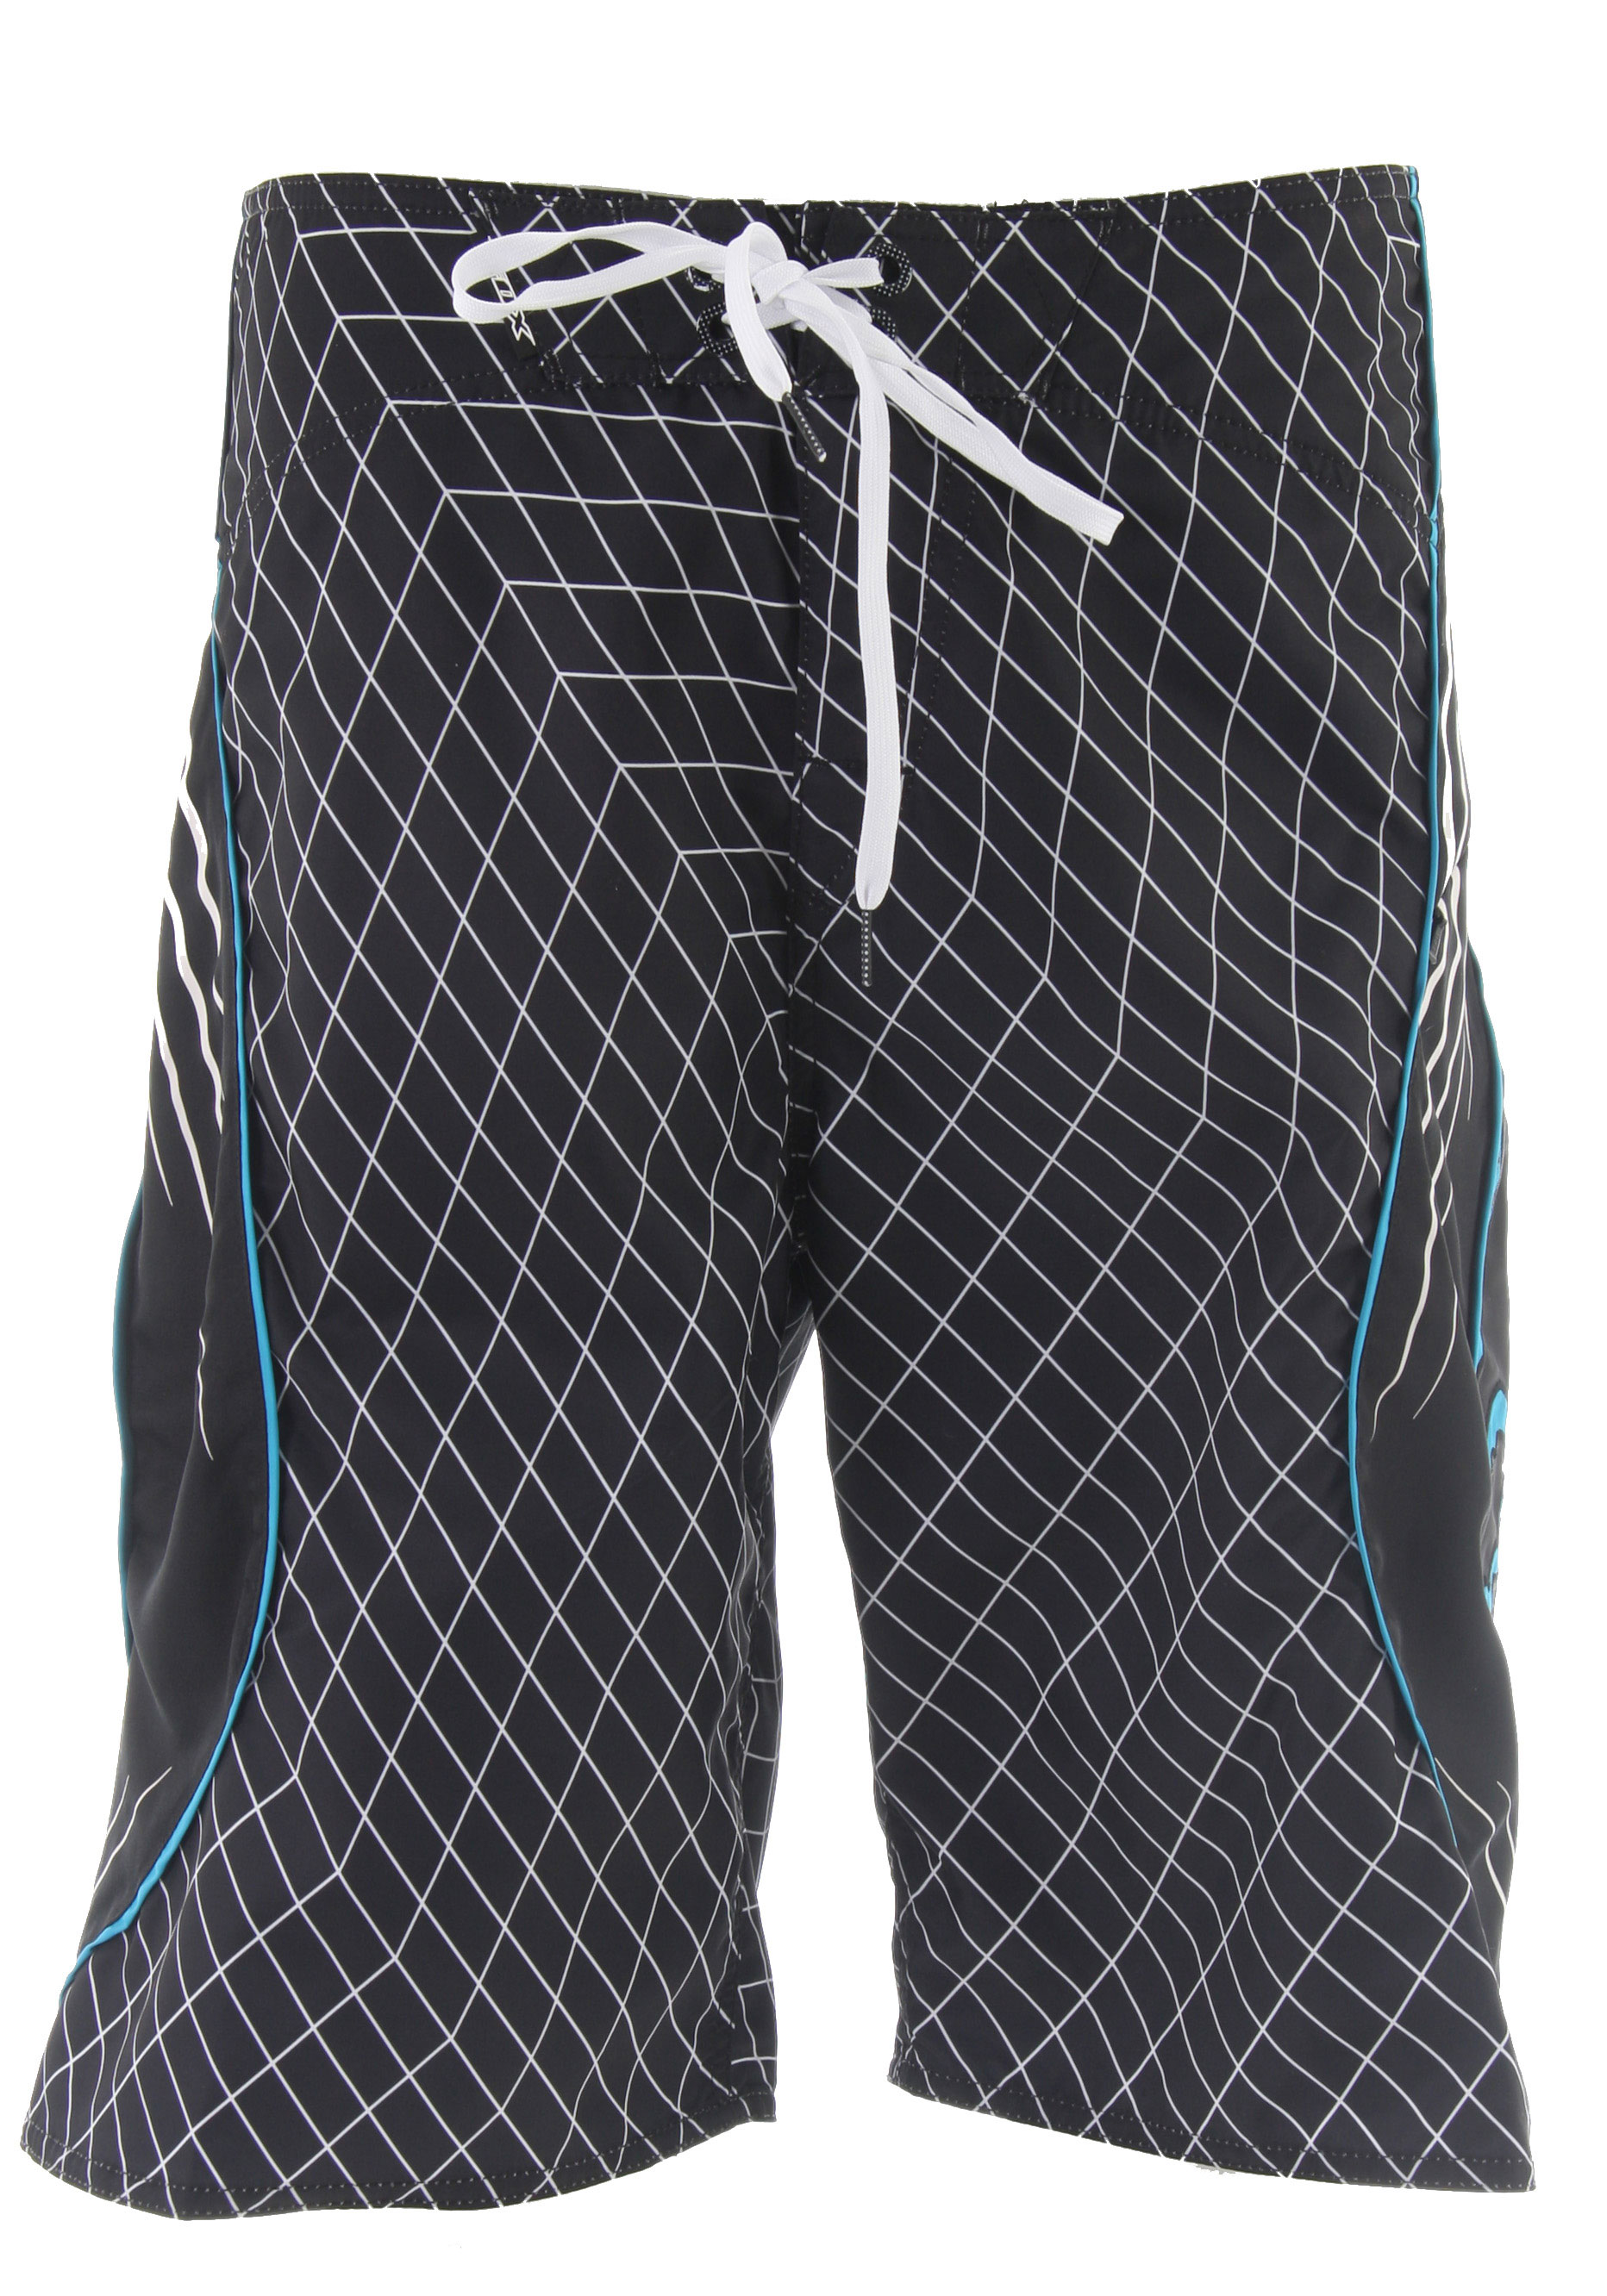 "Surf You can never have enough boardshorts, especially during a hot summer season. Style out with these fabulous plaid boardshorts and be sure to feel comfortable and cool. Fox Top Shelf Plaid Boardshorts are made with 100% polyester and have a velcro fly and drawstring waist. Micro-herringbone fabric offers extra comfort and soft to the touch, ideal for long summer days. Wear these out to the beach or the pool and feel comfortable in the sun.Key Features of the Fox Top Shelf Boardshorts: Top shelf design for our top Fox customers Curved line design and logo on side poly twill panels Micro-herringbone fabric offers extra comfort and soft hand feel. Regular fit sits slightly below the knee. Velcro fly and drawstring waist. 100% polyester herringbone. 22 1/2"" outseam. - $48.95"